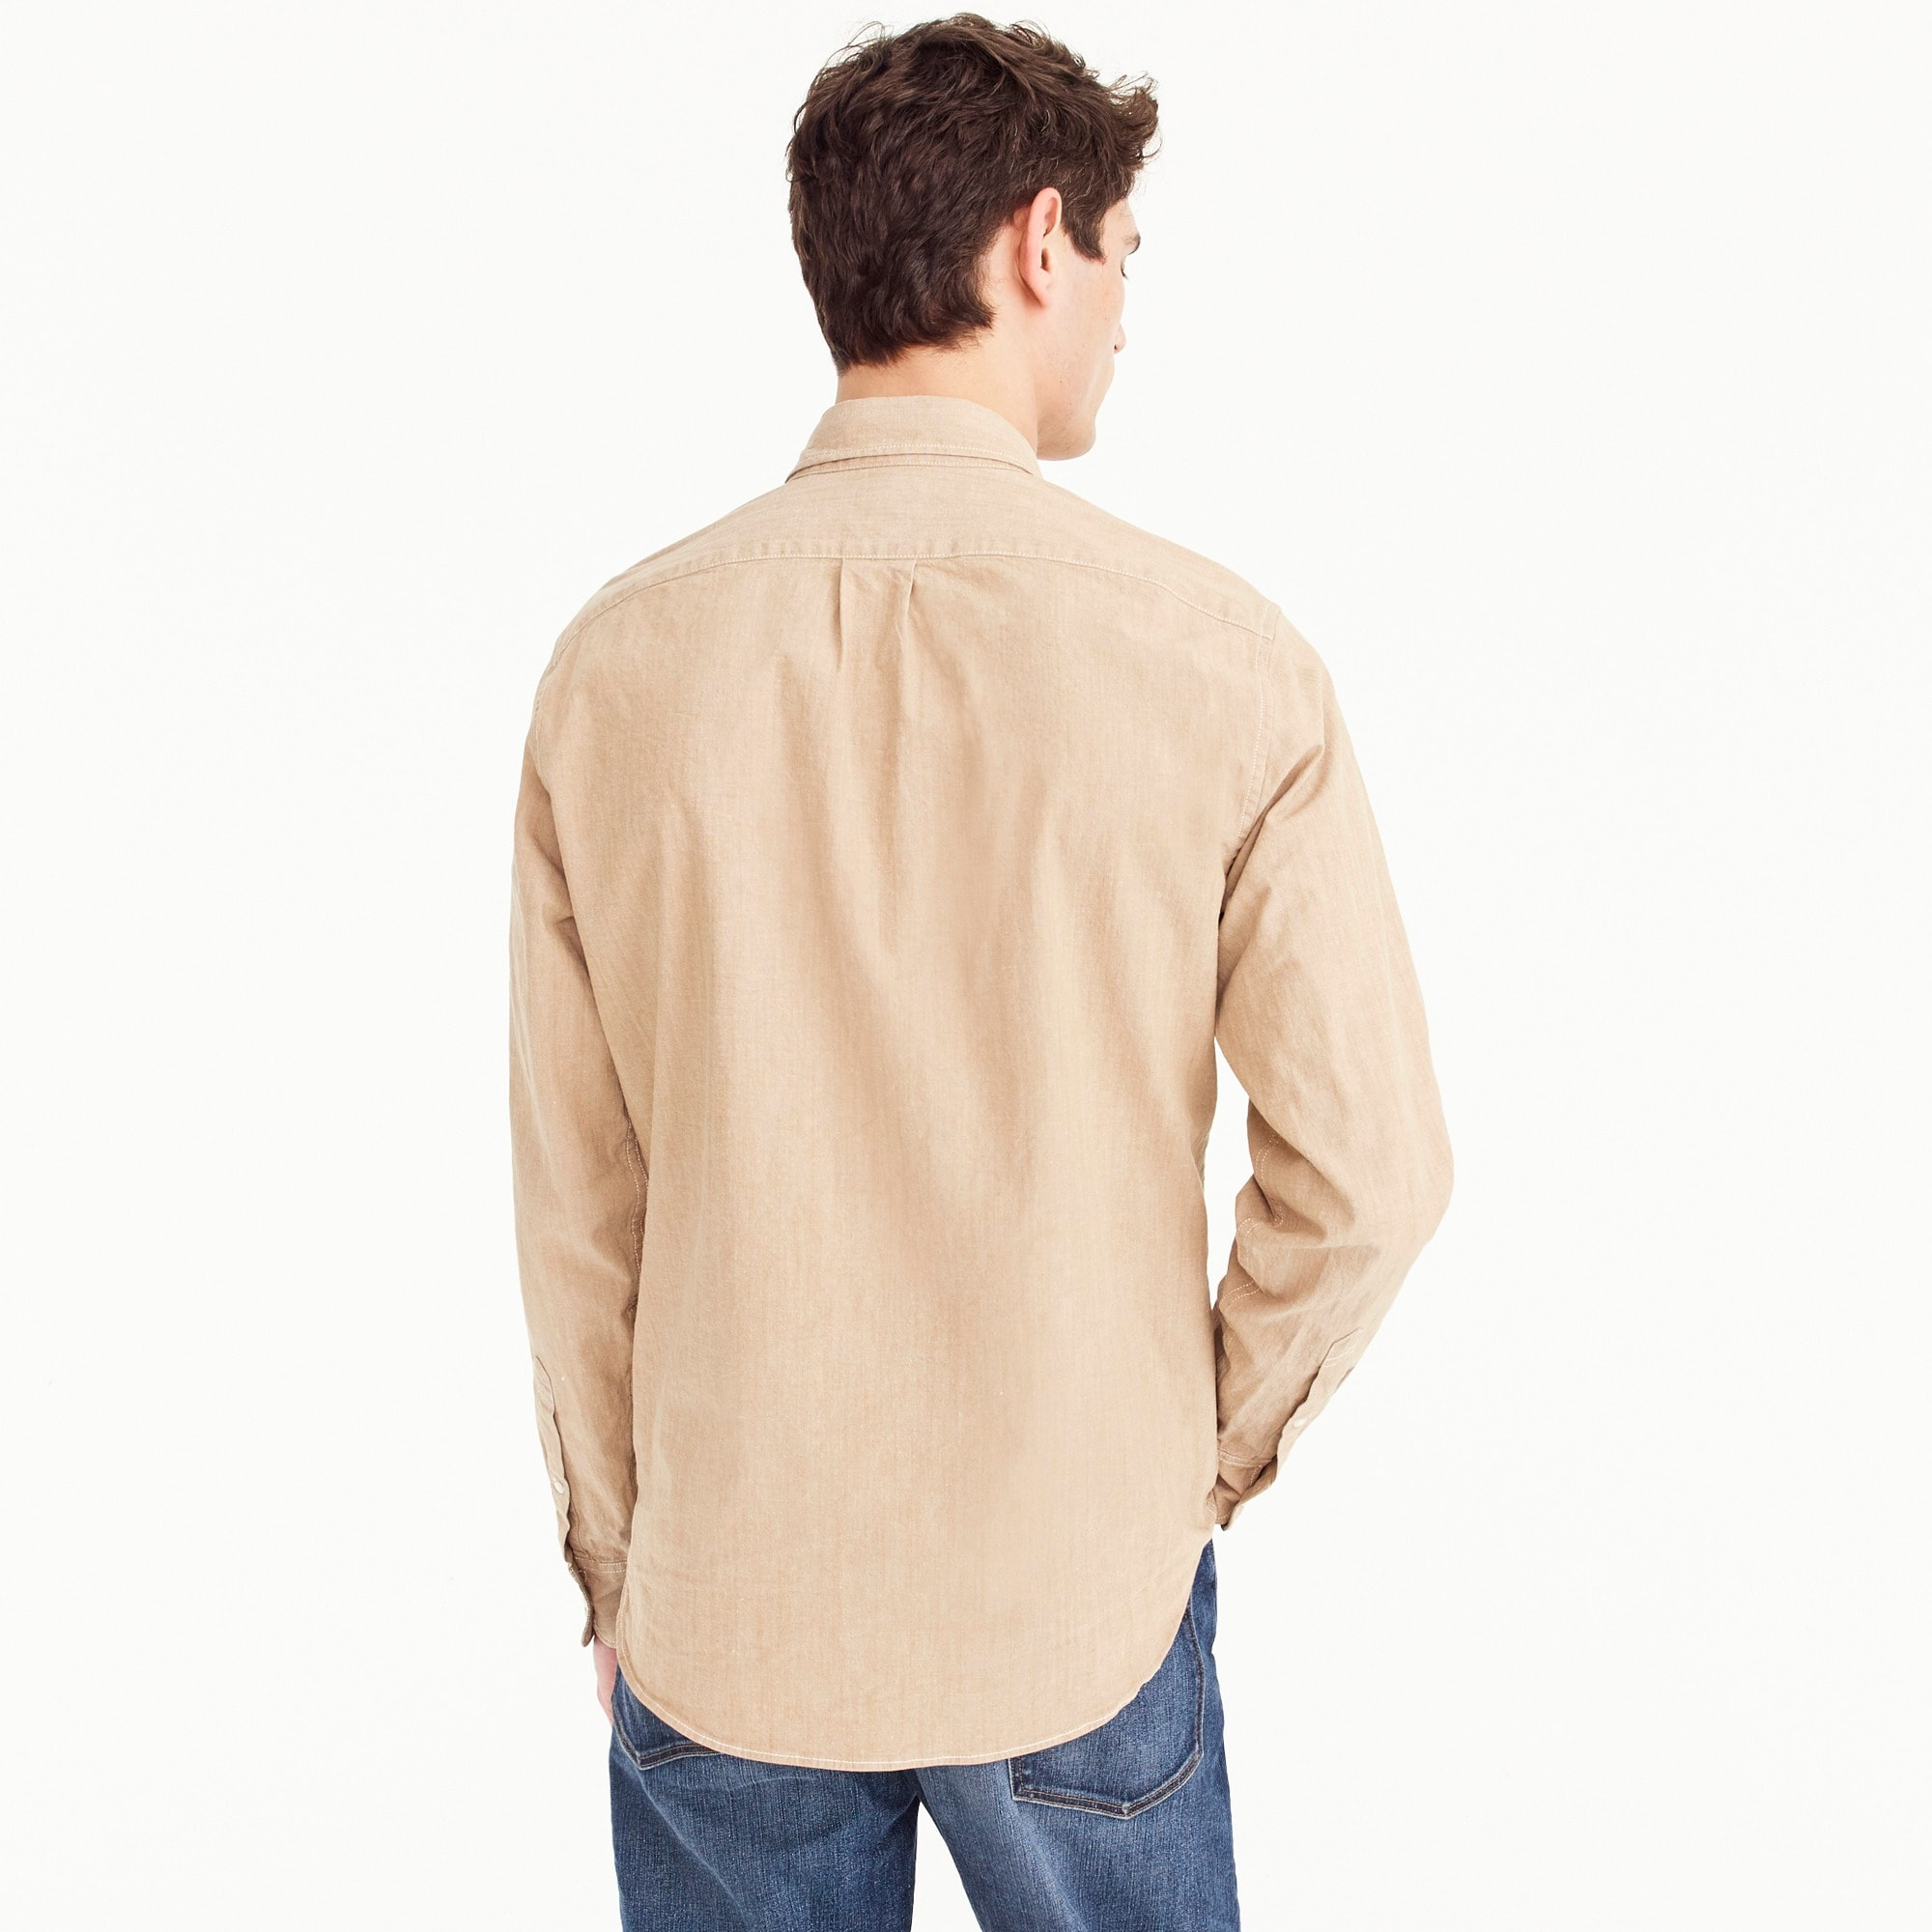 Image 2 for Tall stretch one-pocket chambray shirt